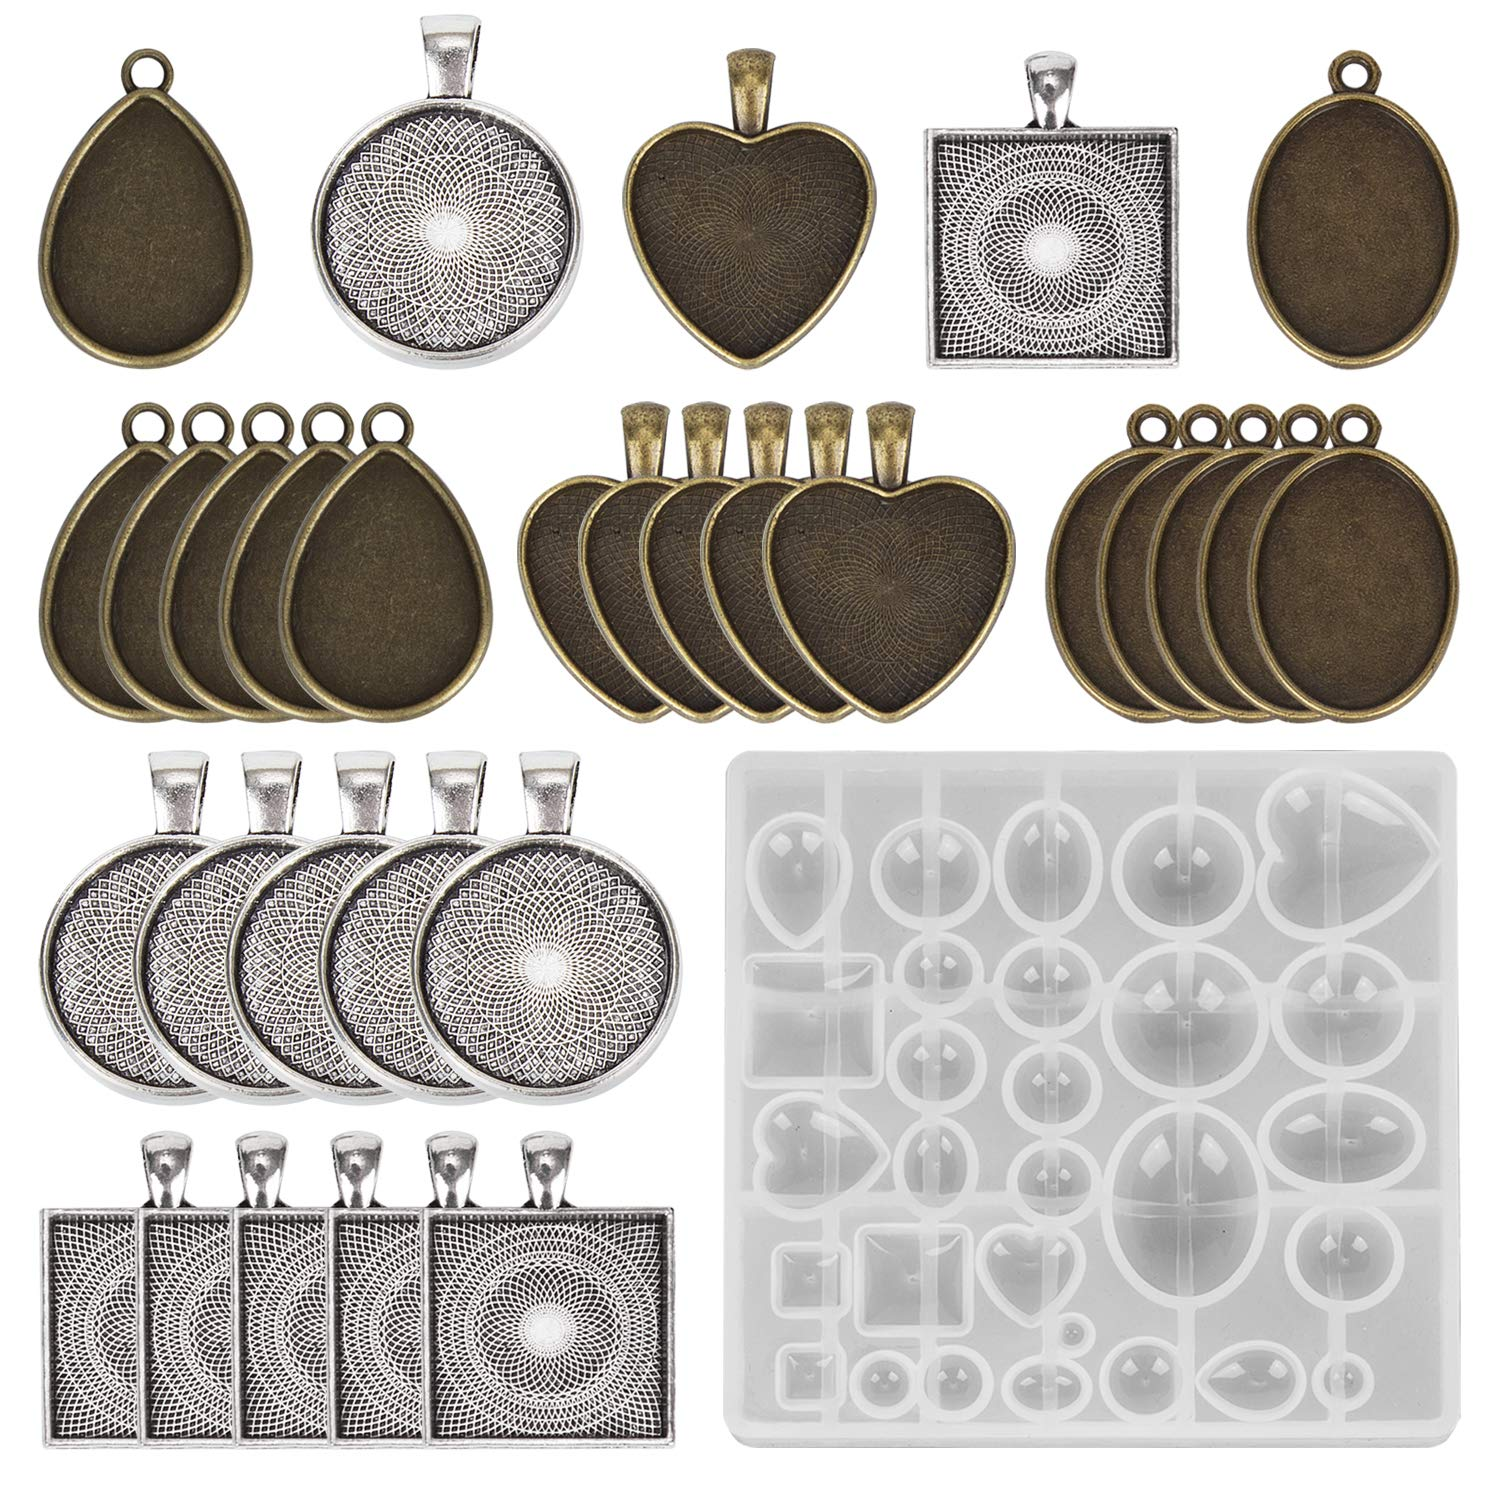 229Pcs Resin Casting Molds Kit Silicone DIY Jewelry Pendant Mould Making   !